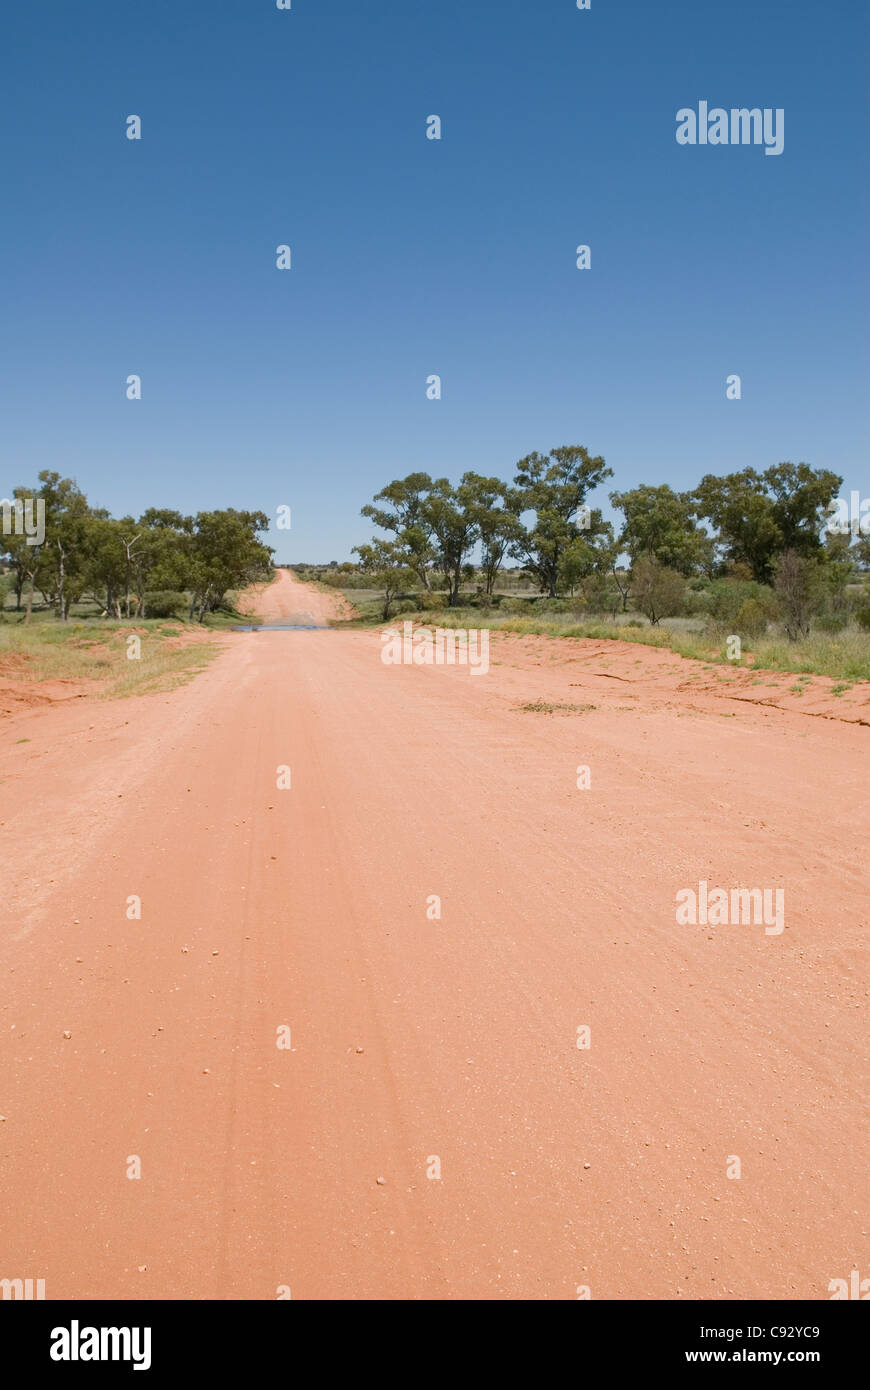 Many unsealed roads connect the remoter settlements of the region of Central Australia the most sparsely populated - Stock Image